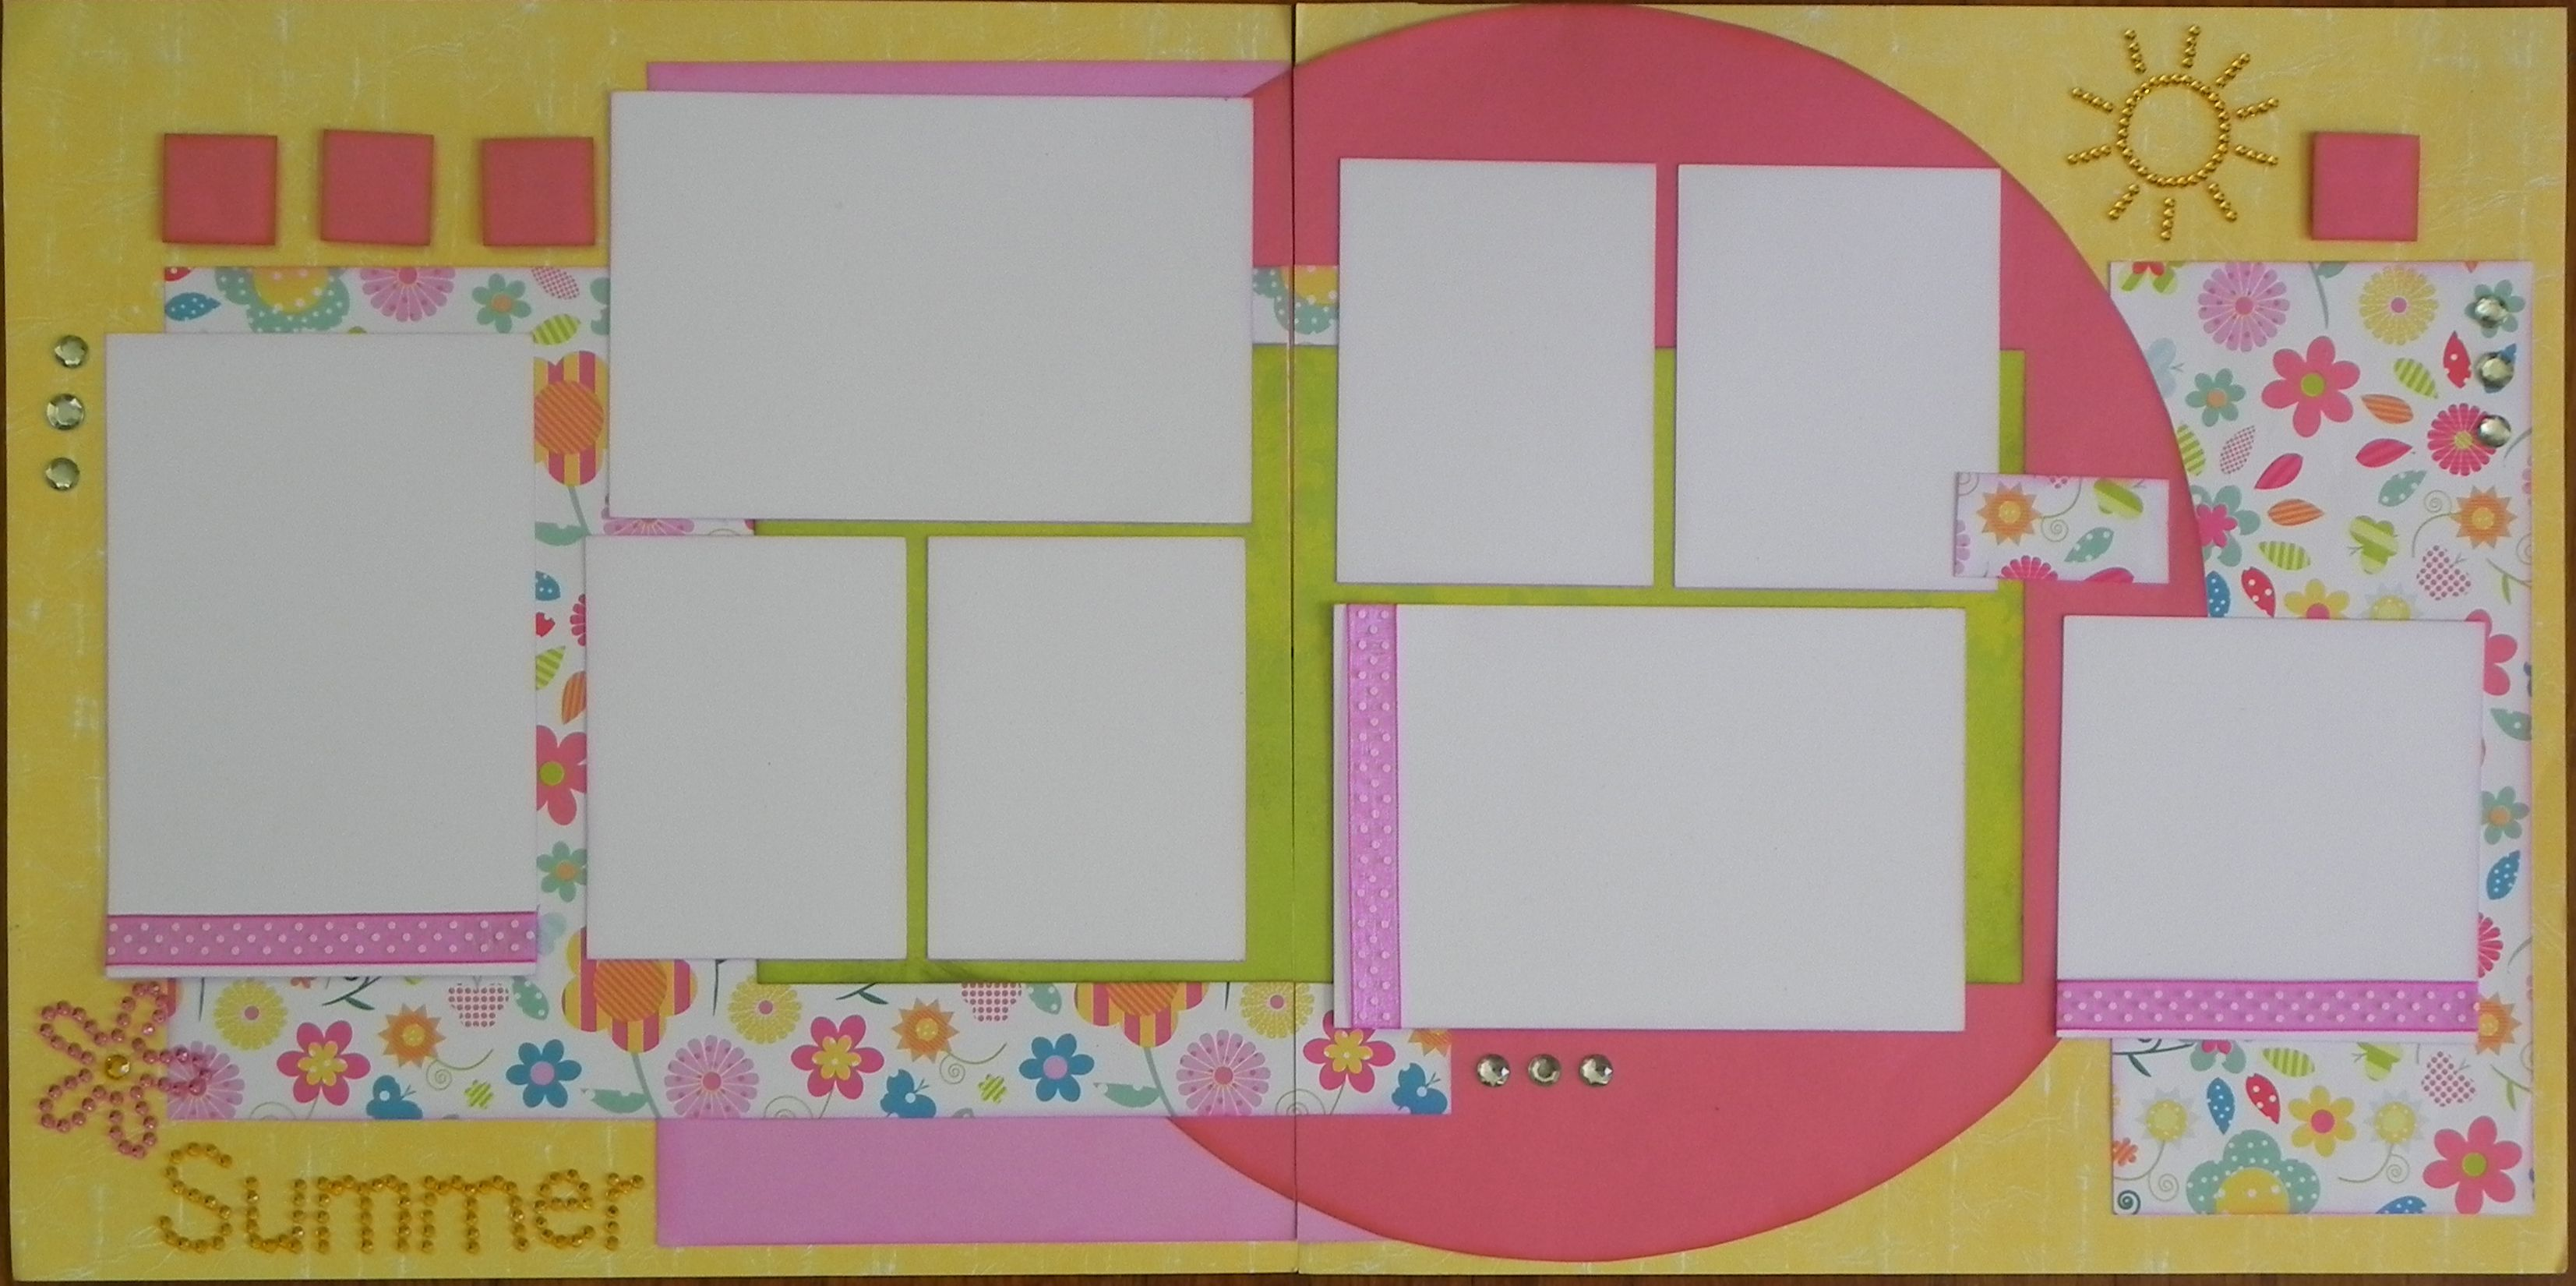 Premier Scrapbook Designs: March 2013 Scrapbook Layout and Card Kits ...